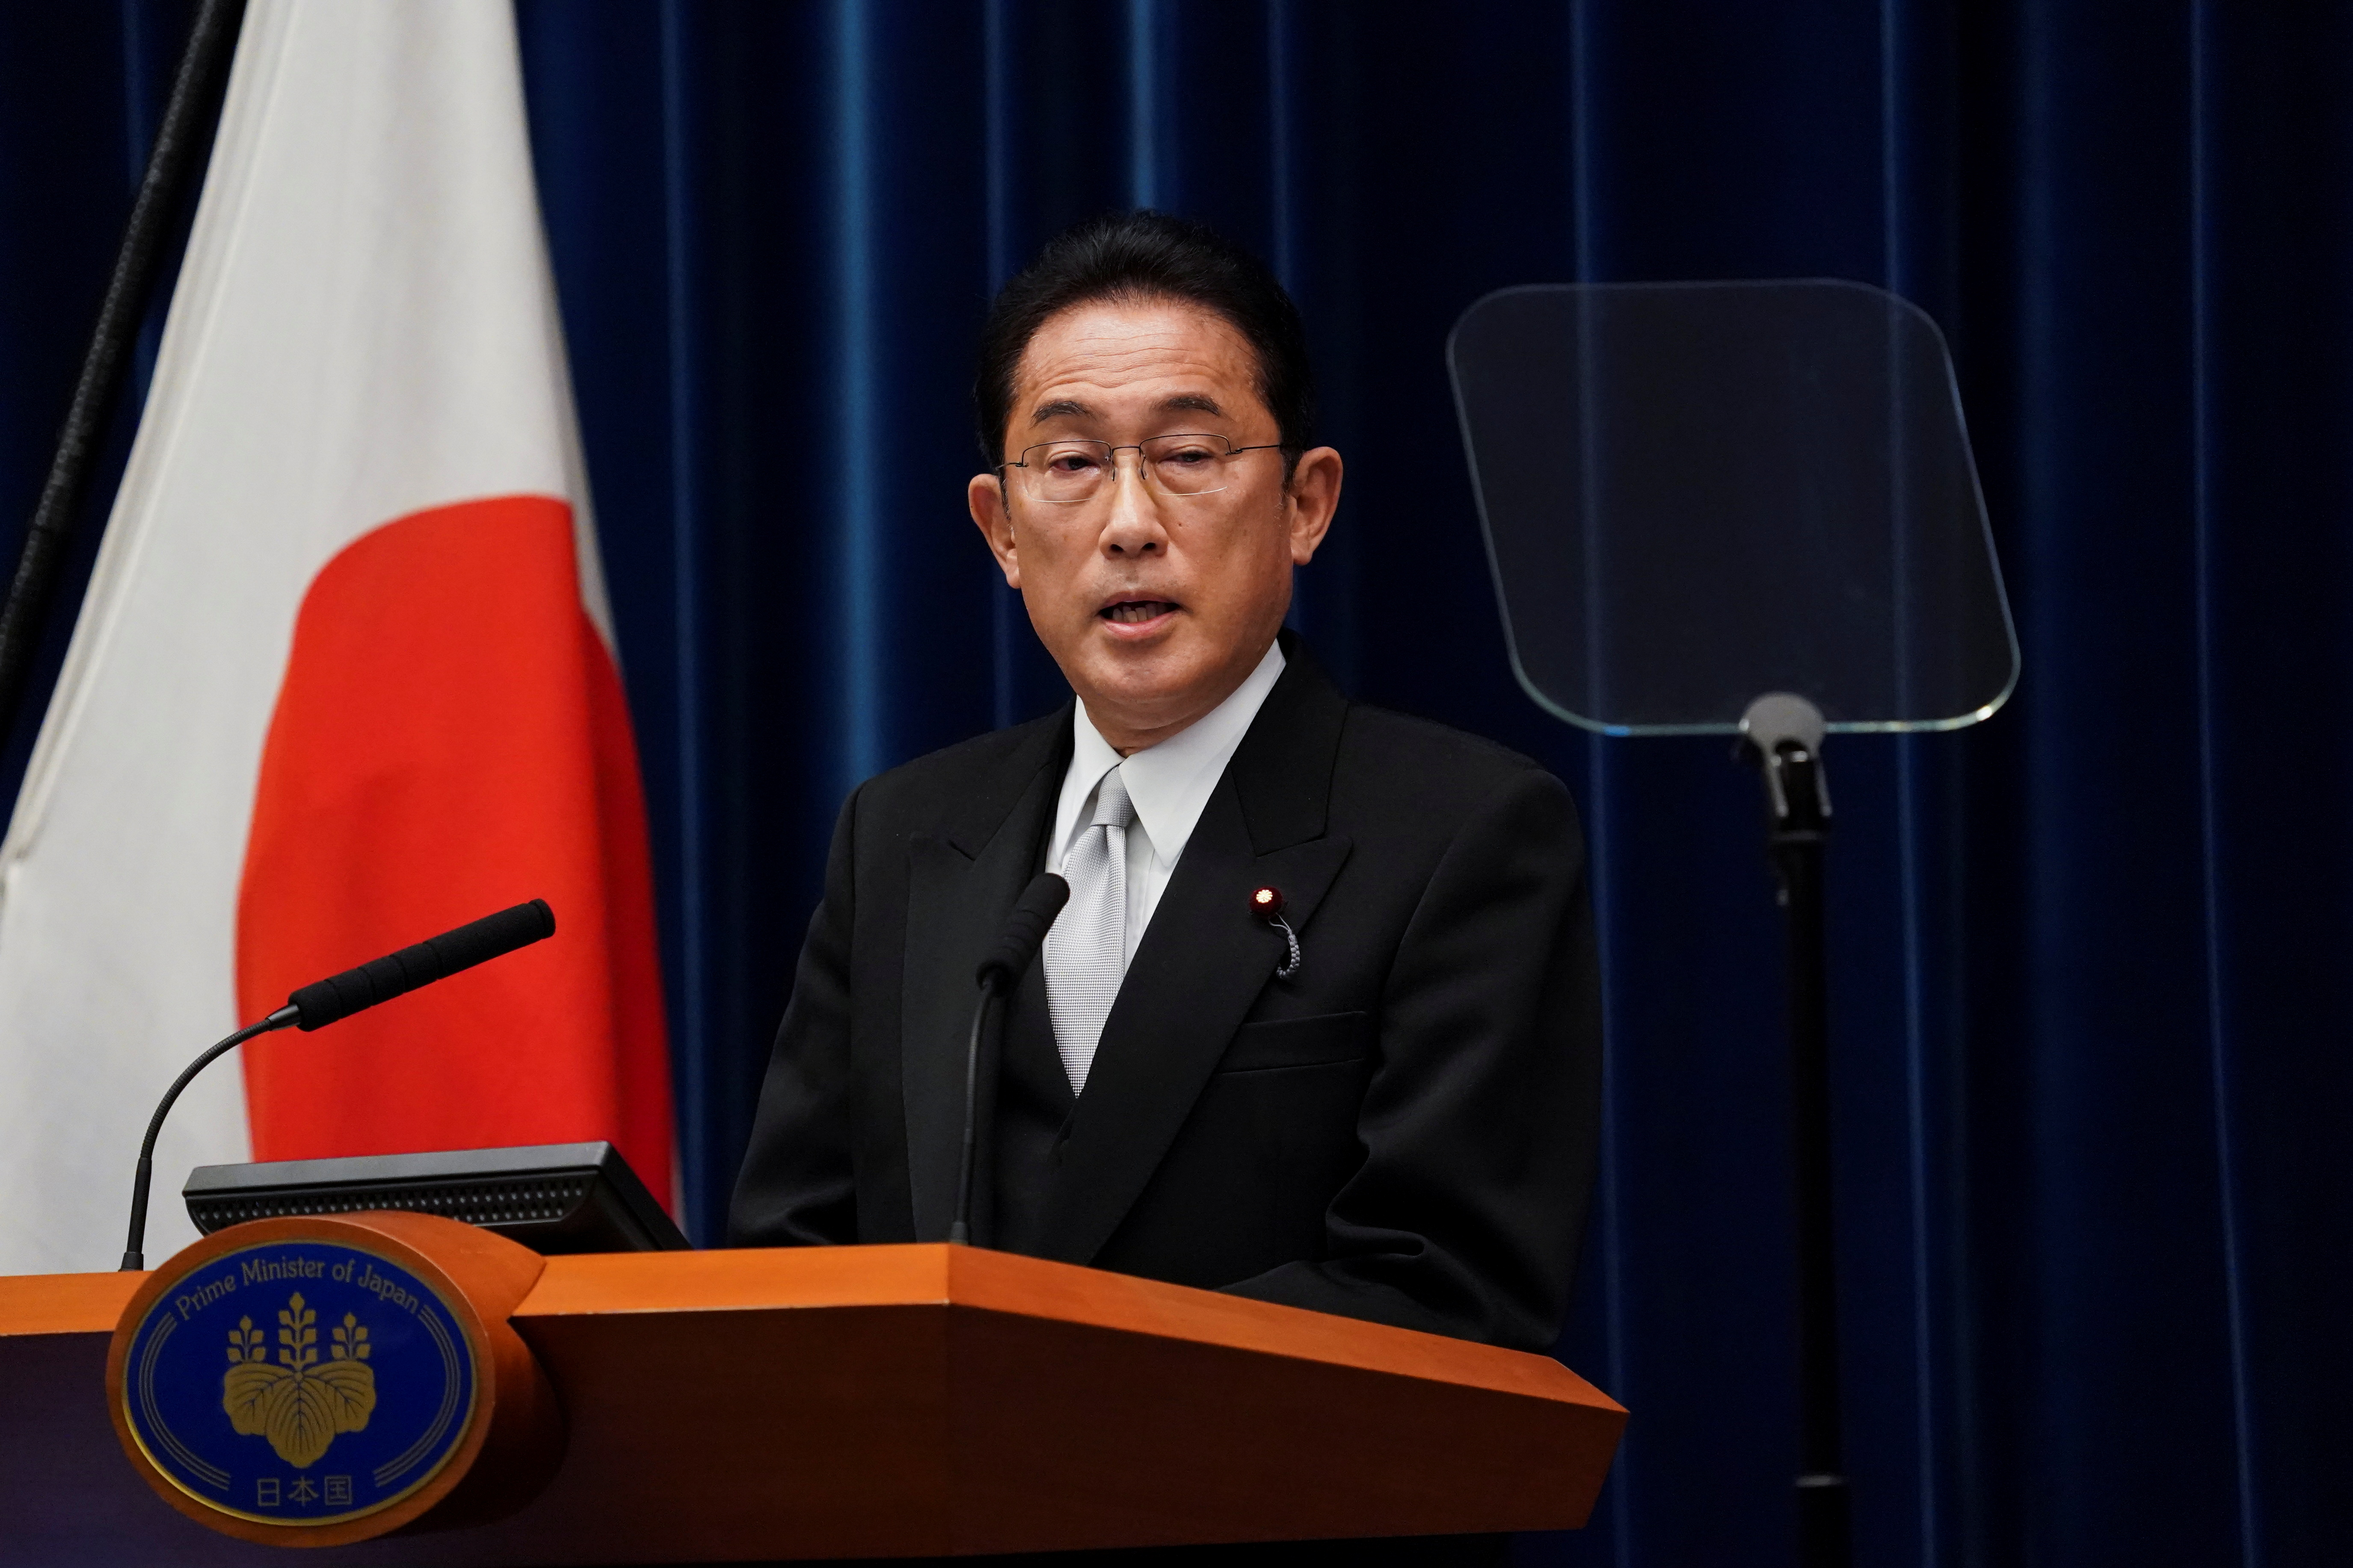 Fumio Kishida, Japan's prime minister, speaks during a news conference at the prime minister's official residence in Tokyo, Japan, October 4, 2021. Toru Hanai/Pool via REUTERS